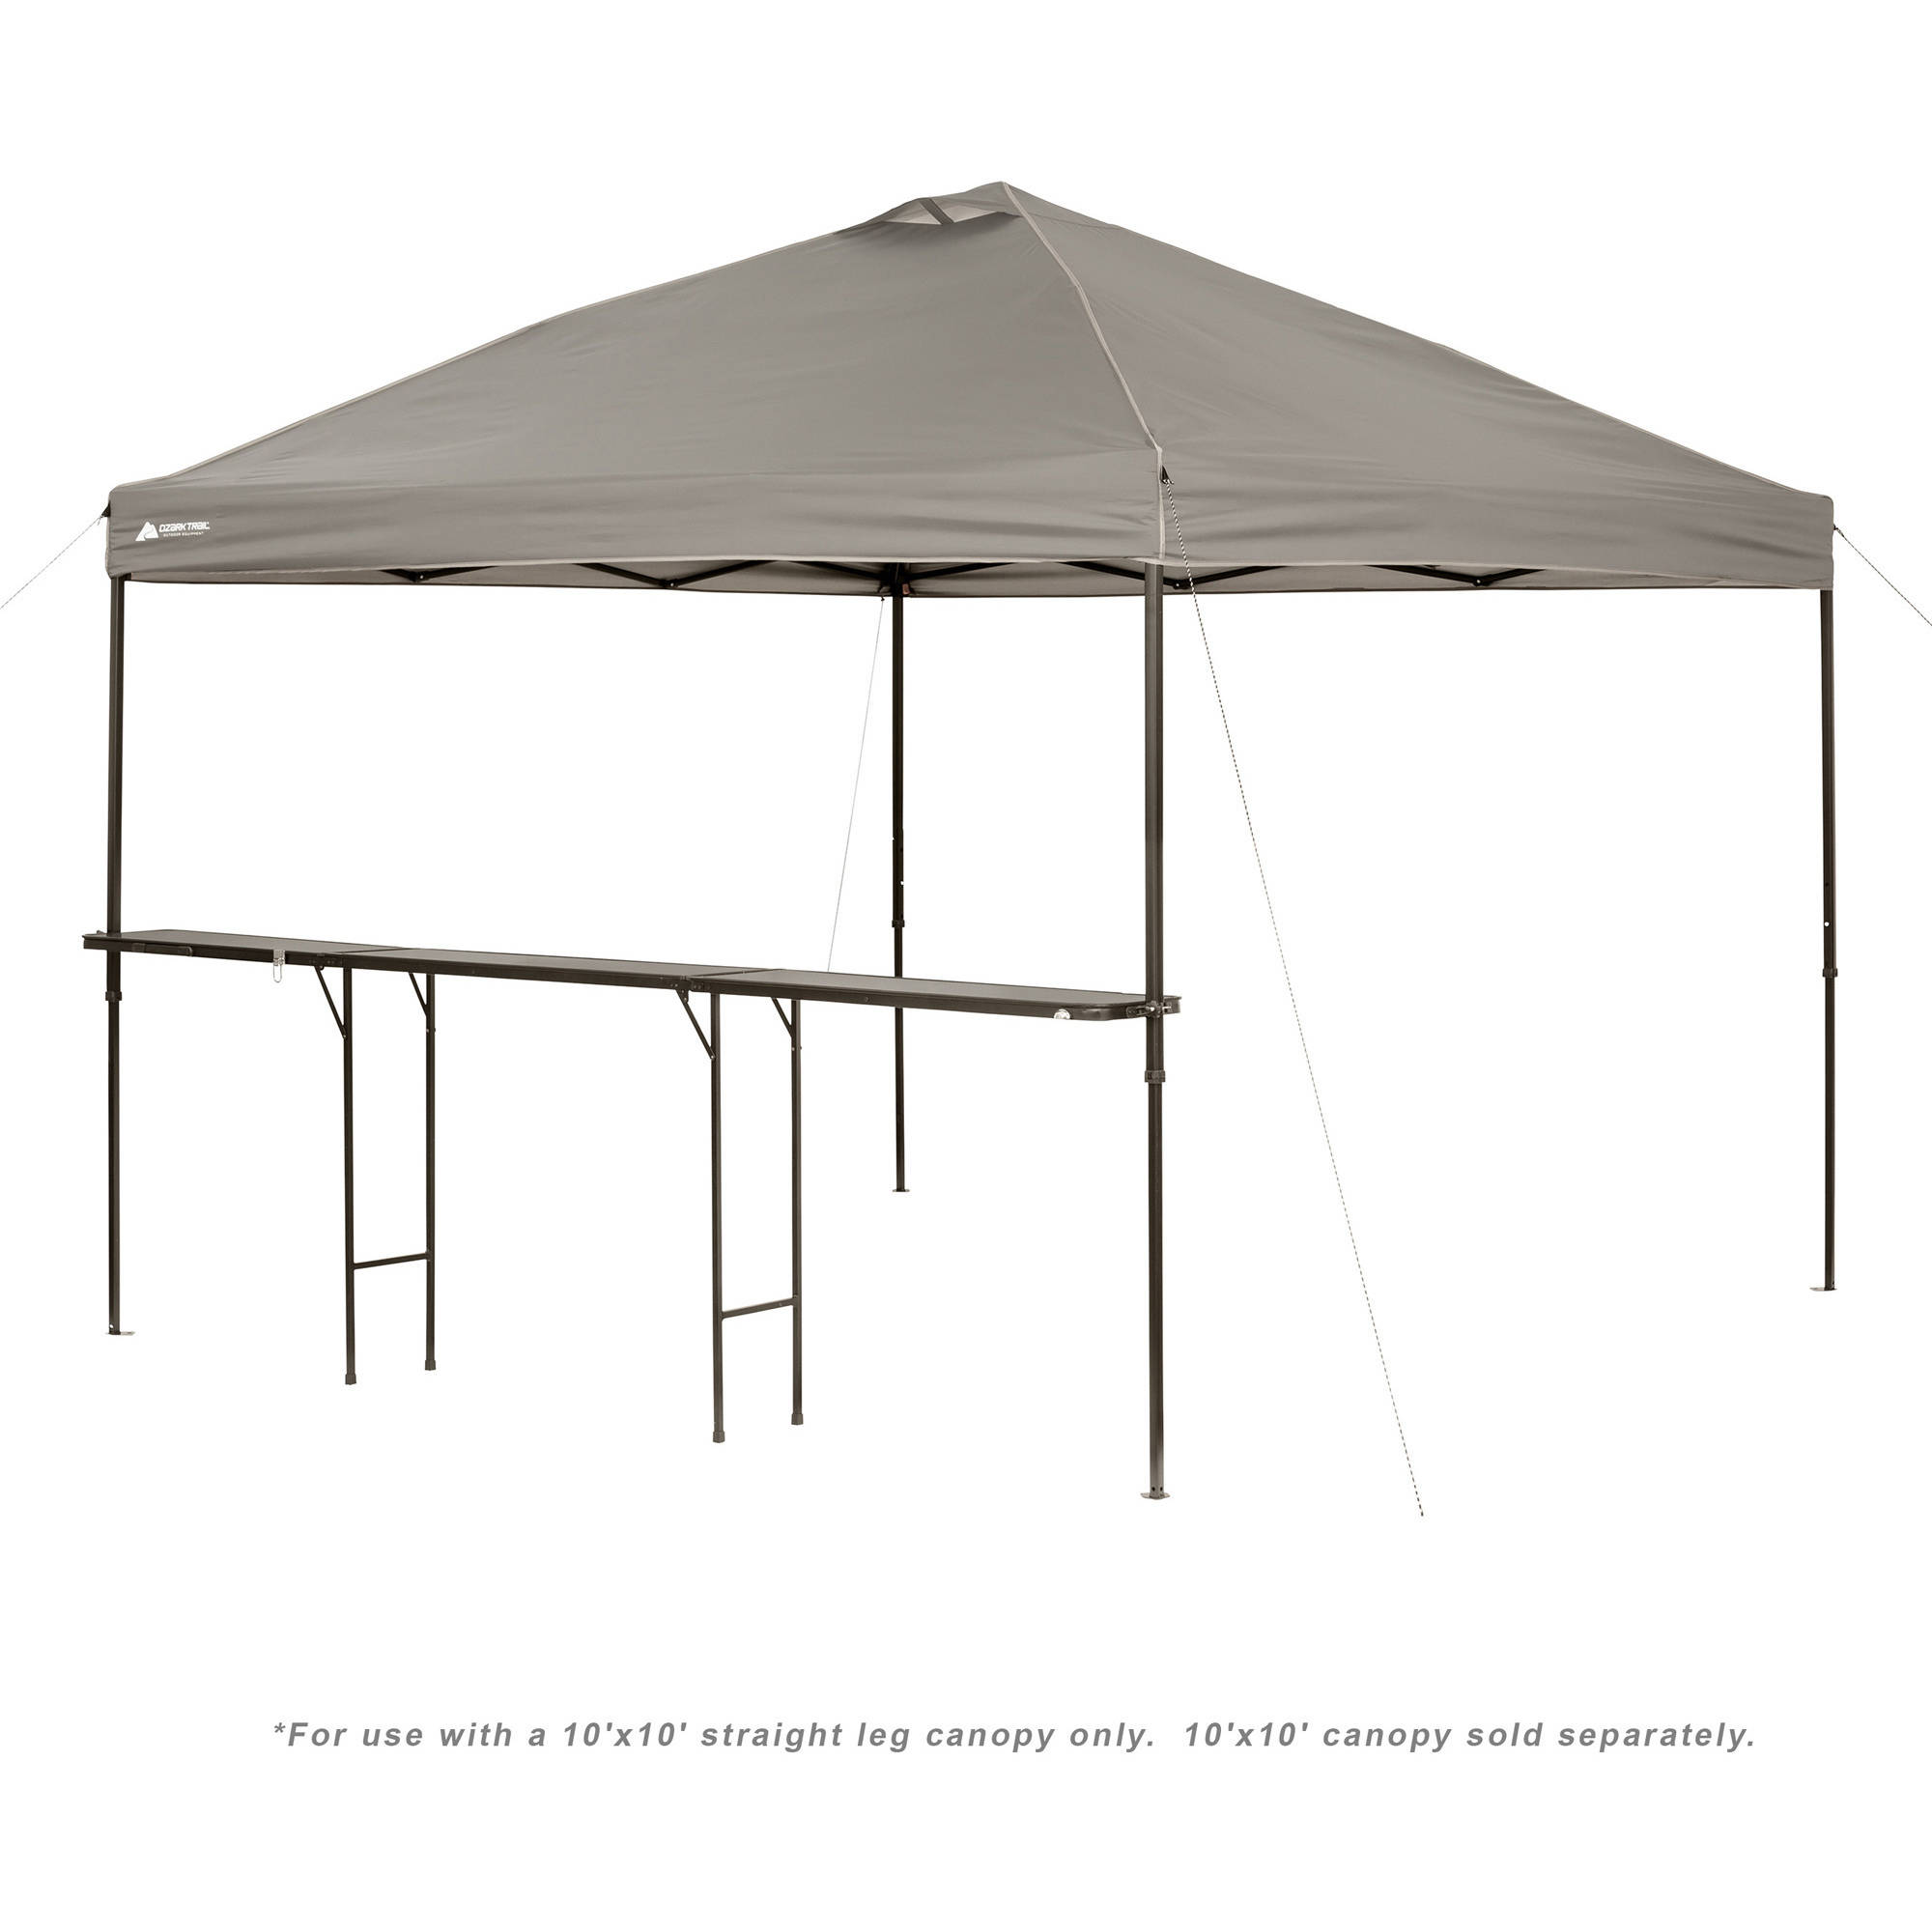 Ozark Trail Bar-Height 10u0027 Folding Canopy Table  sc 1 st  Walmart.com & Ozark Trail Bar-Height 10u0027 Folding Canopy Table - Walmart.com